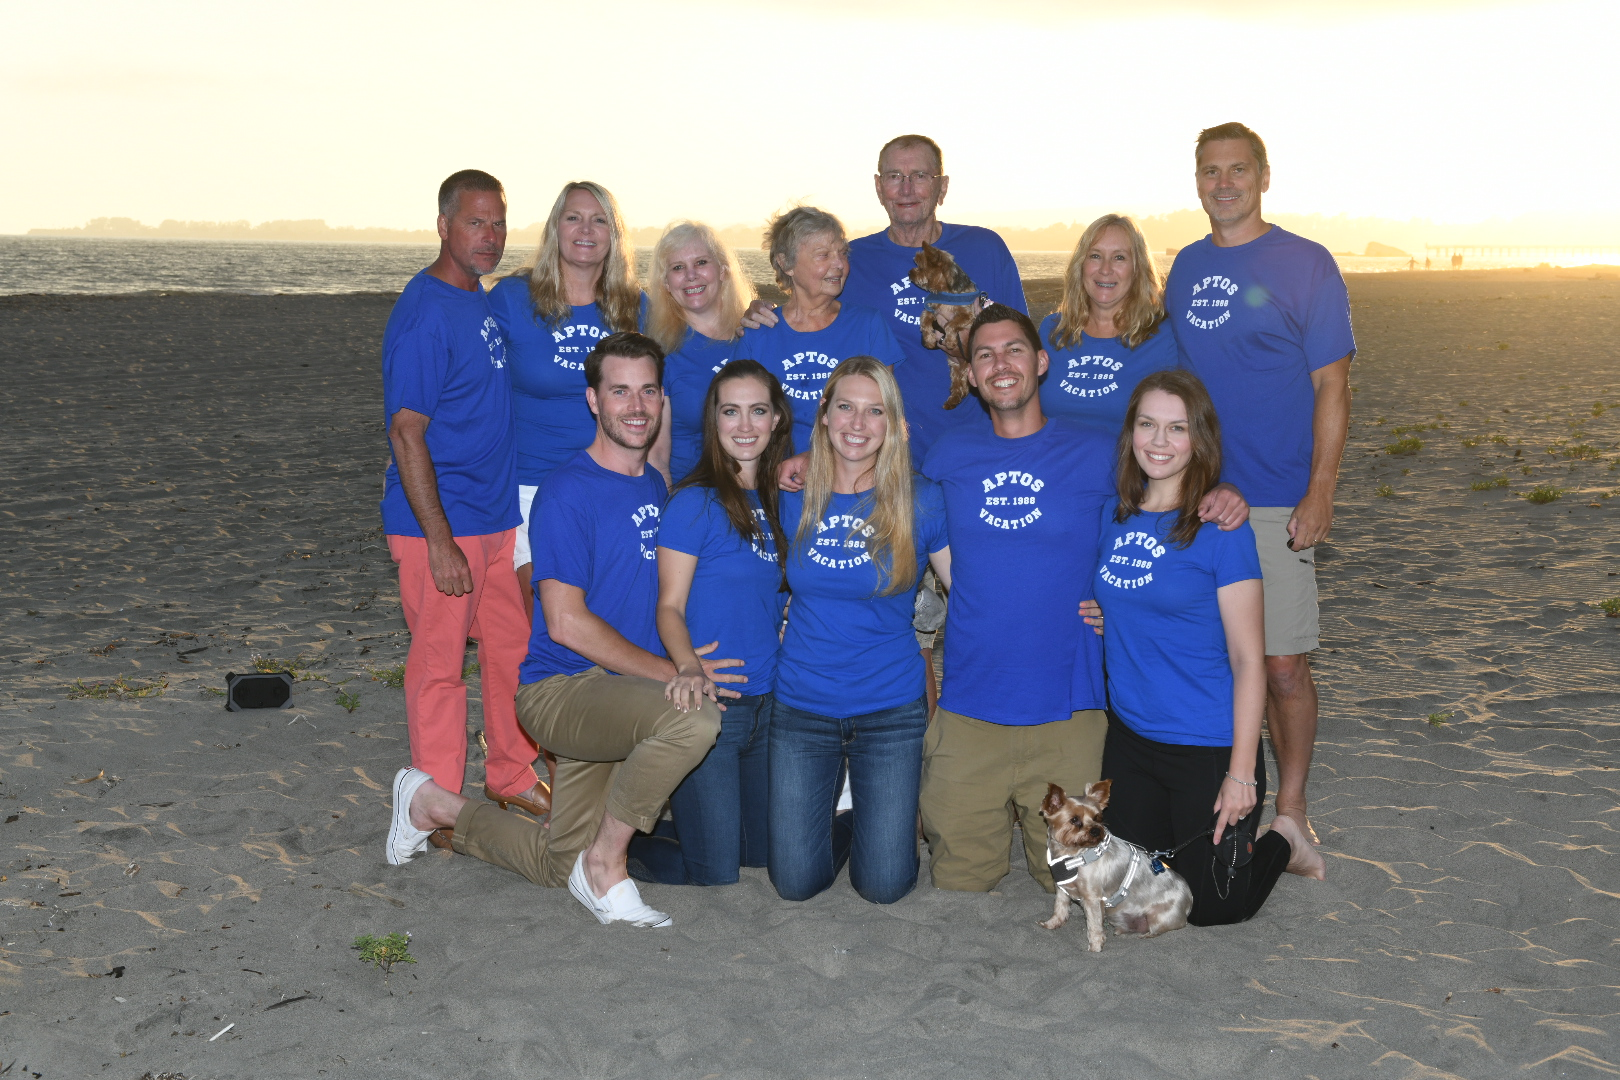 Family photo complete with our 30 year anniversary shirts. Spanky [front Yorkie] obviously stole the show!